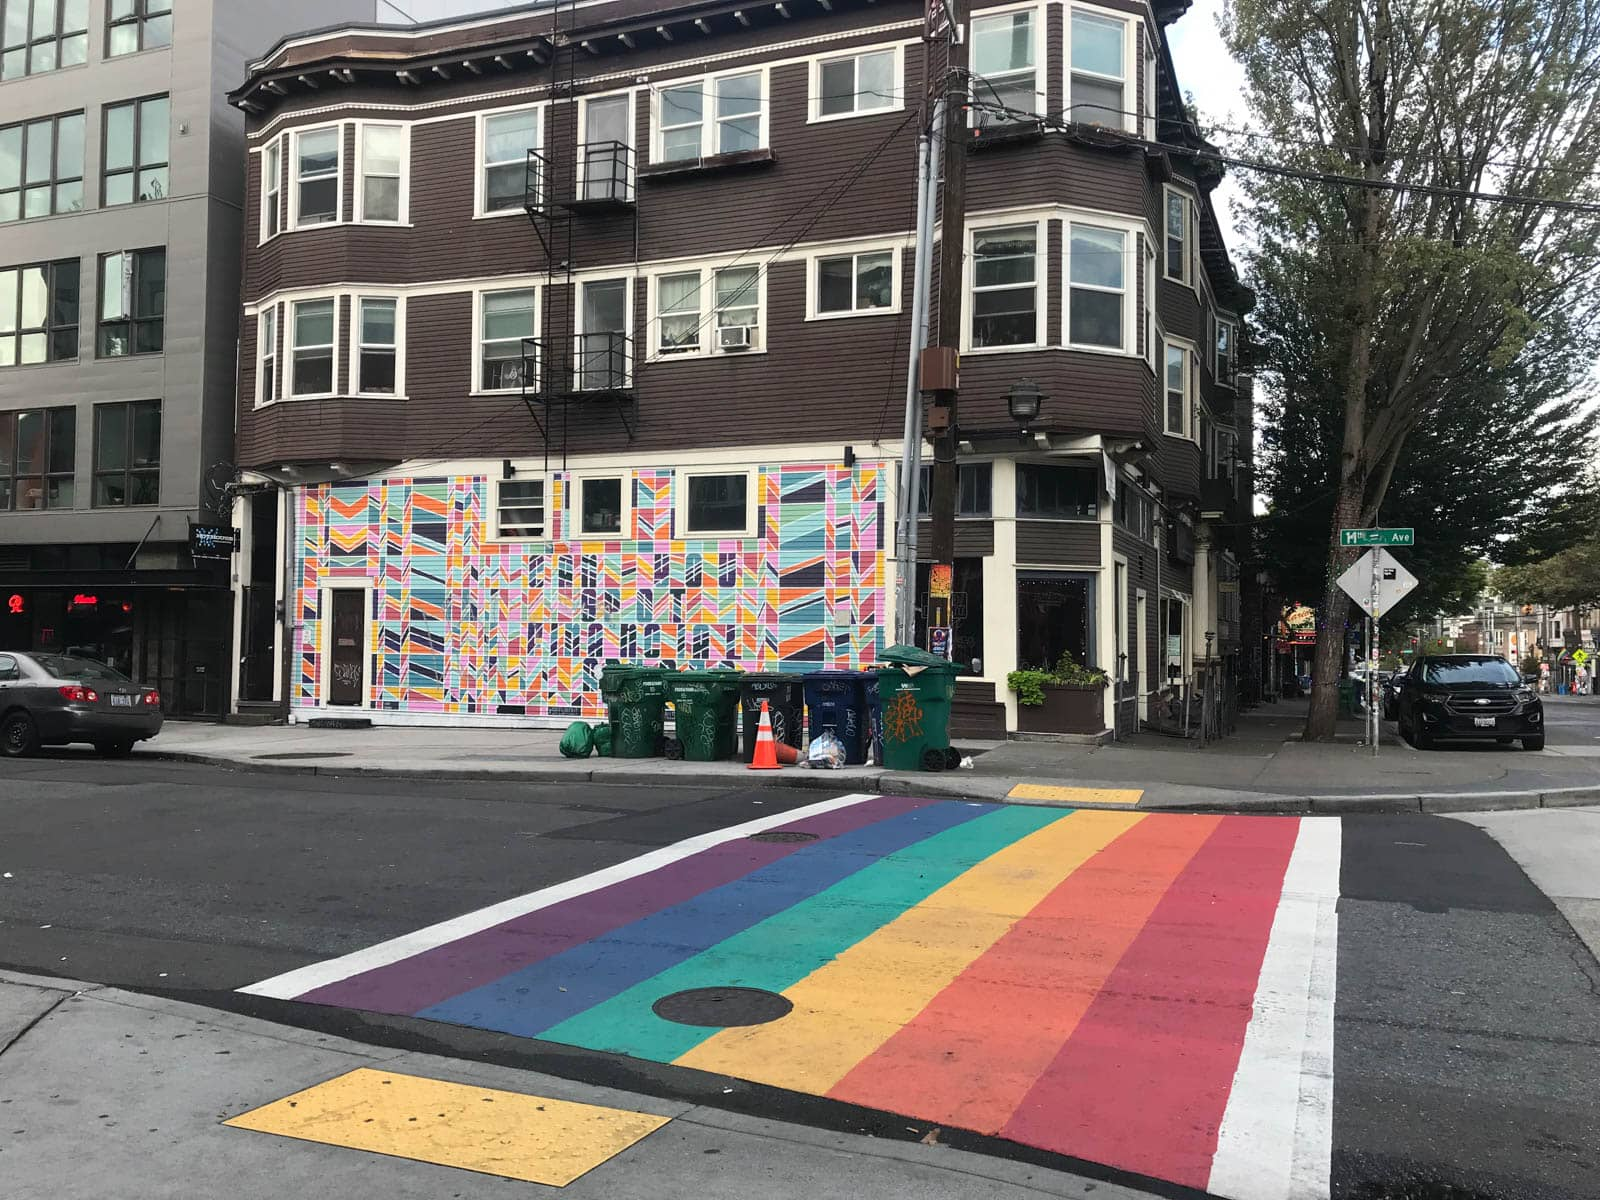 A rainbow-striped crosswalk painted on the road, with a colourful mural on the building on the opposite side of the road. The street is quiet.